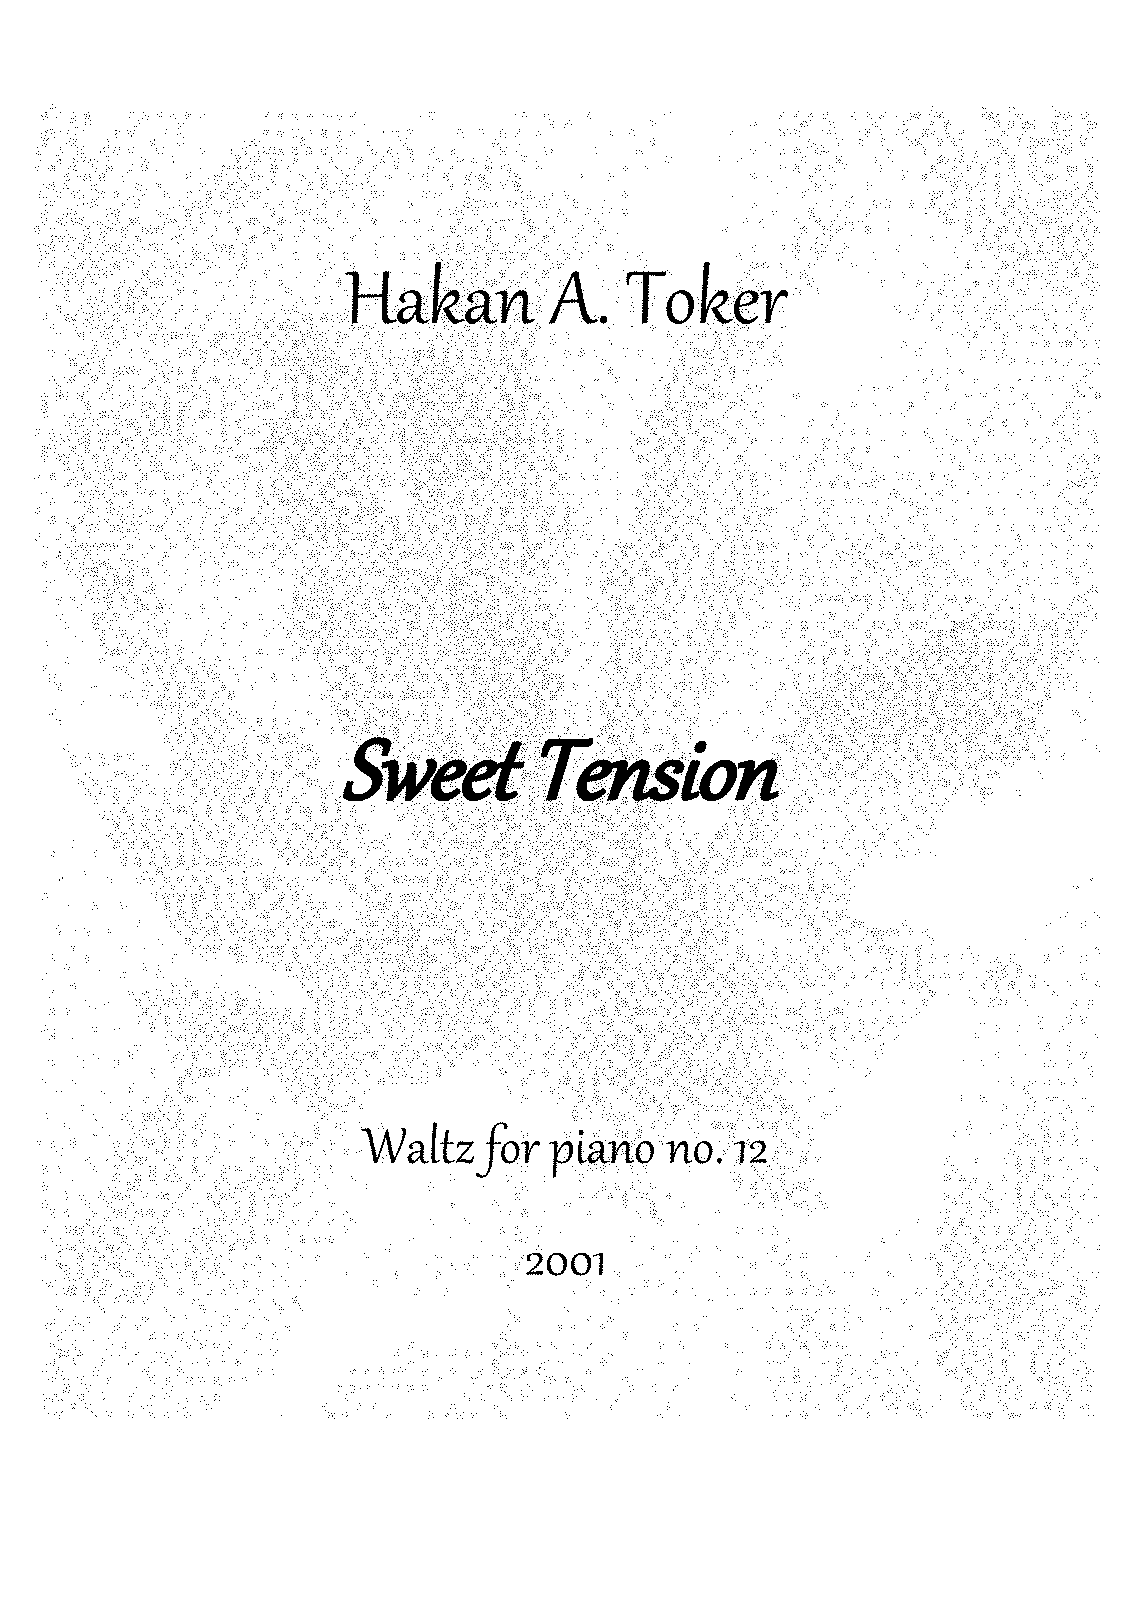 PMLP578708-Sweet Tension by Hakan A. Toker.pdf